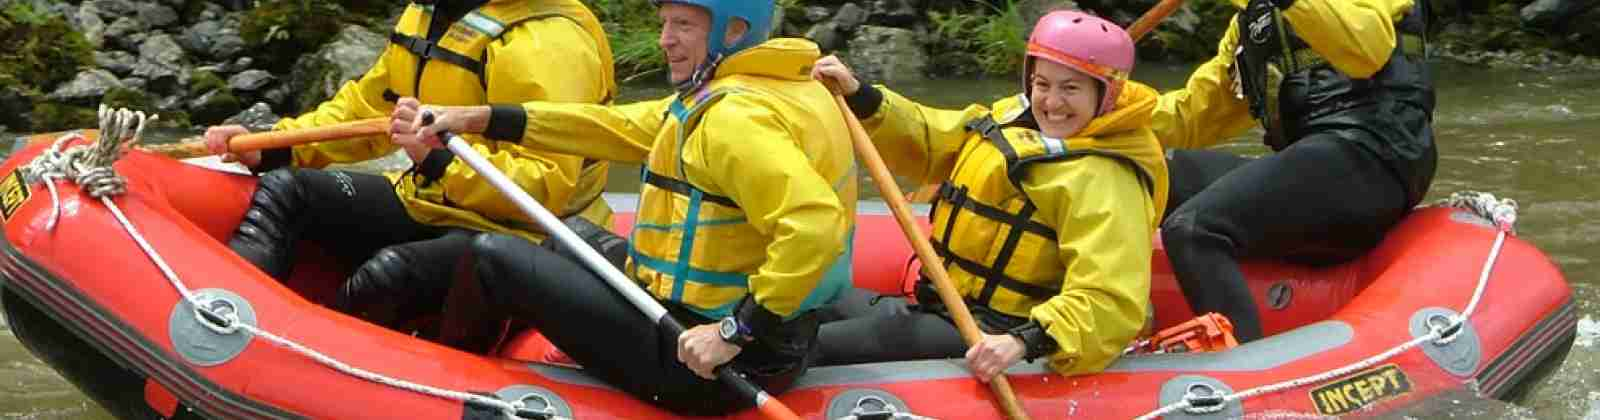 Captivate Adventure white water rafting